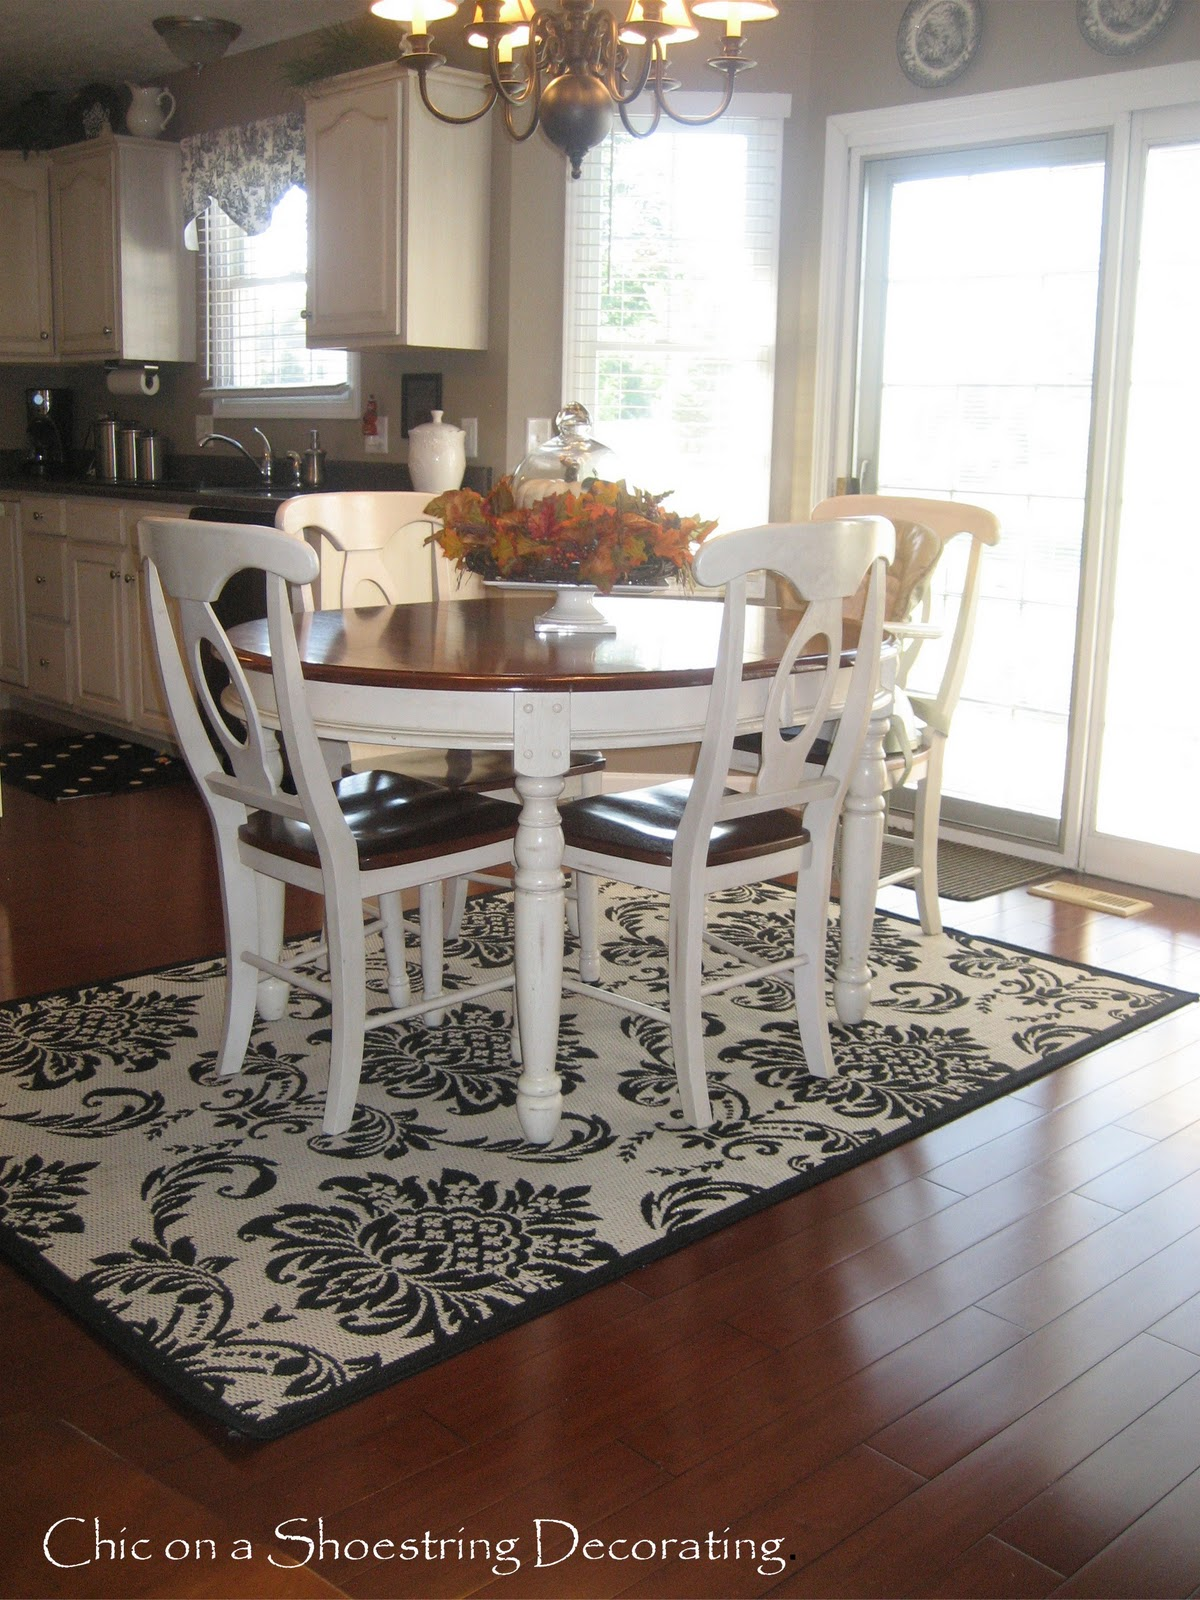 Photos Hgtv Simple Dining Room Rug Round Table Chic On A Shoestring Decorating Csn Damask